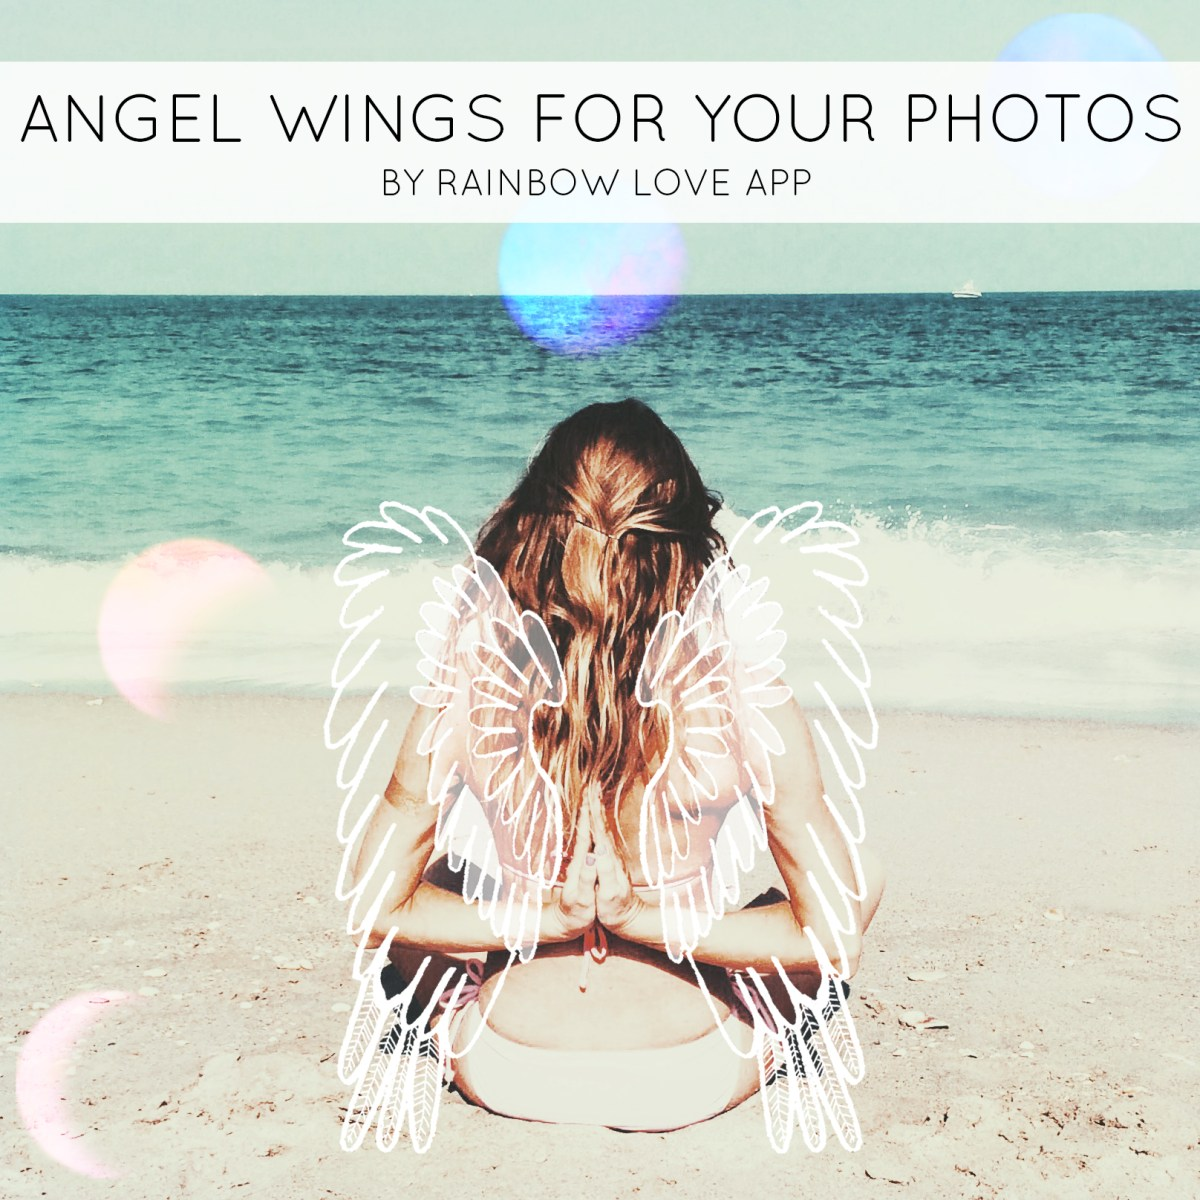 angel-wings-for-your-photos-angel-effect-photo-editor-rainbow-love-app-angels-wing-photo-editing-art-and-filters-best-rainbow-love-app